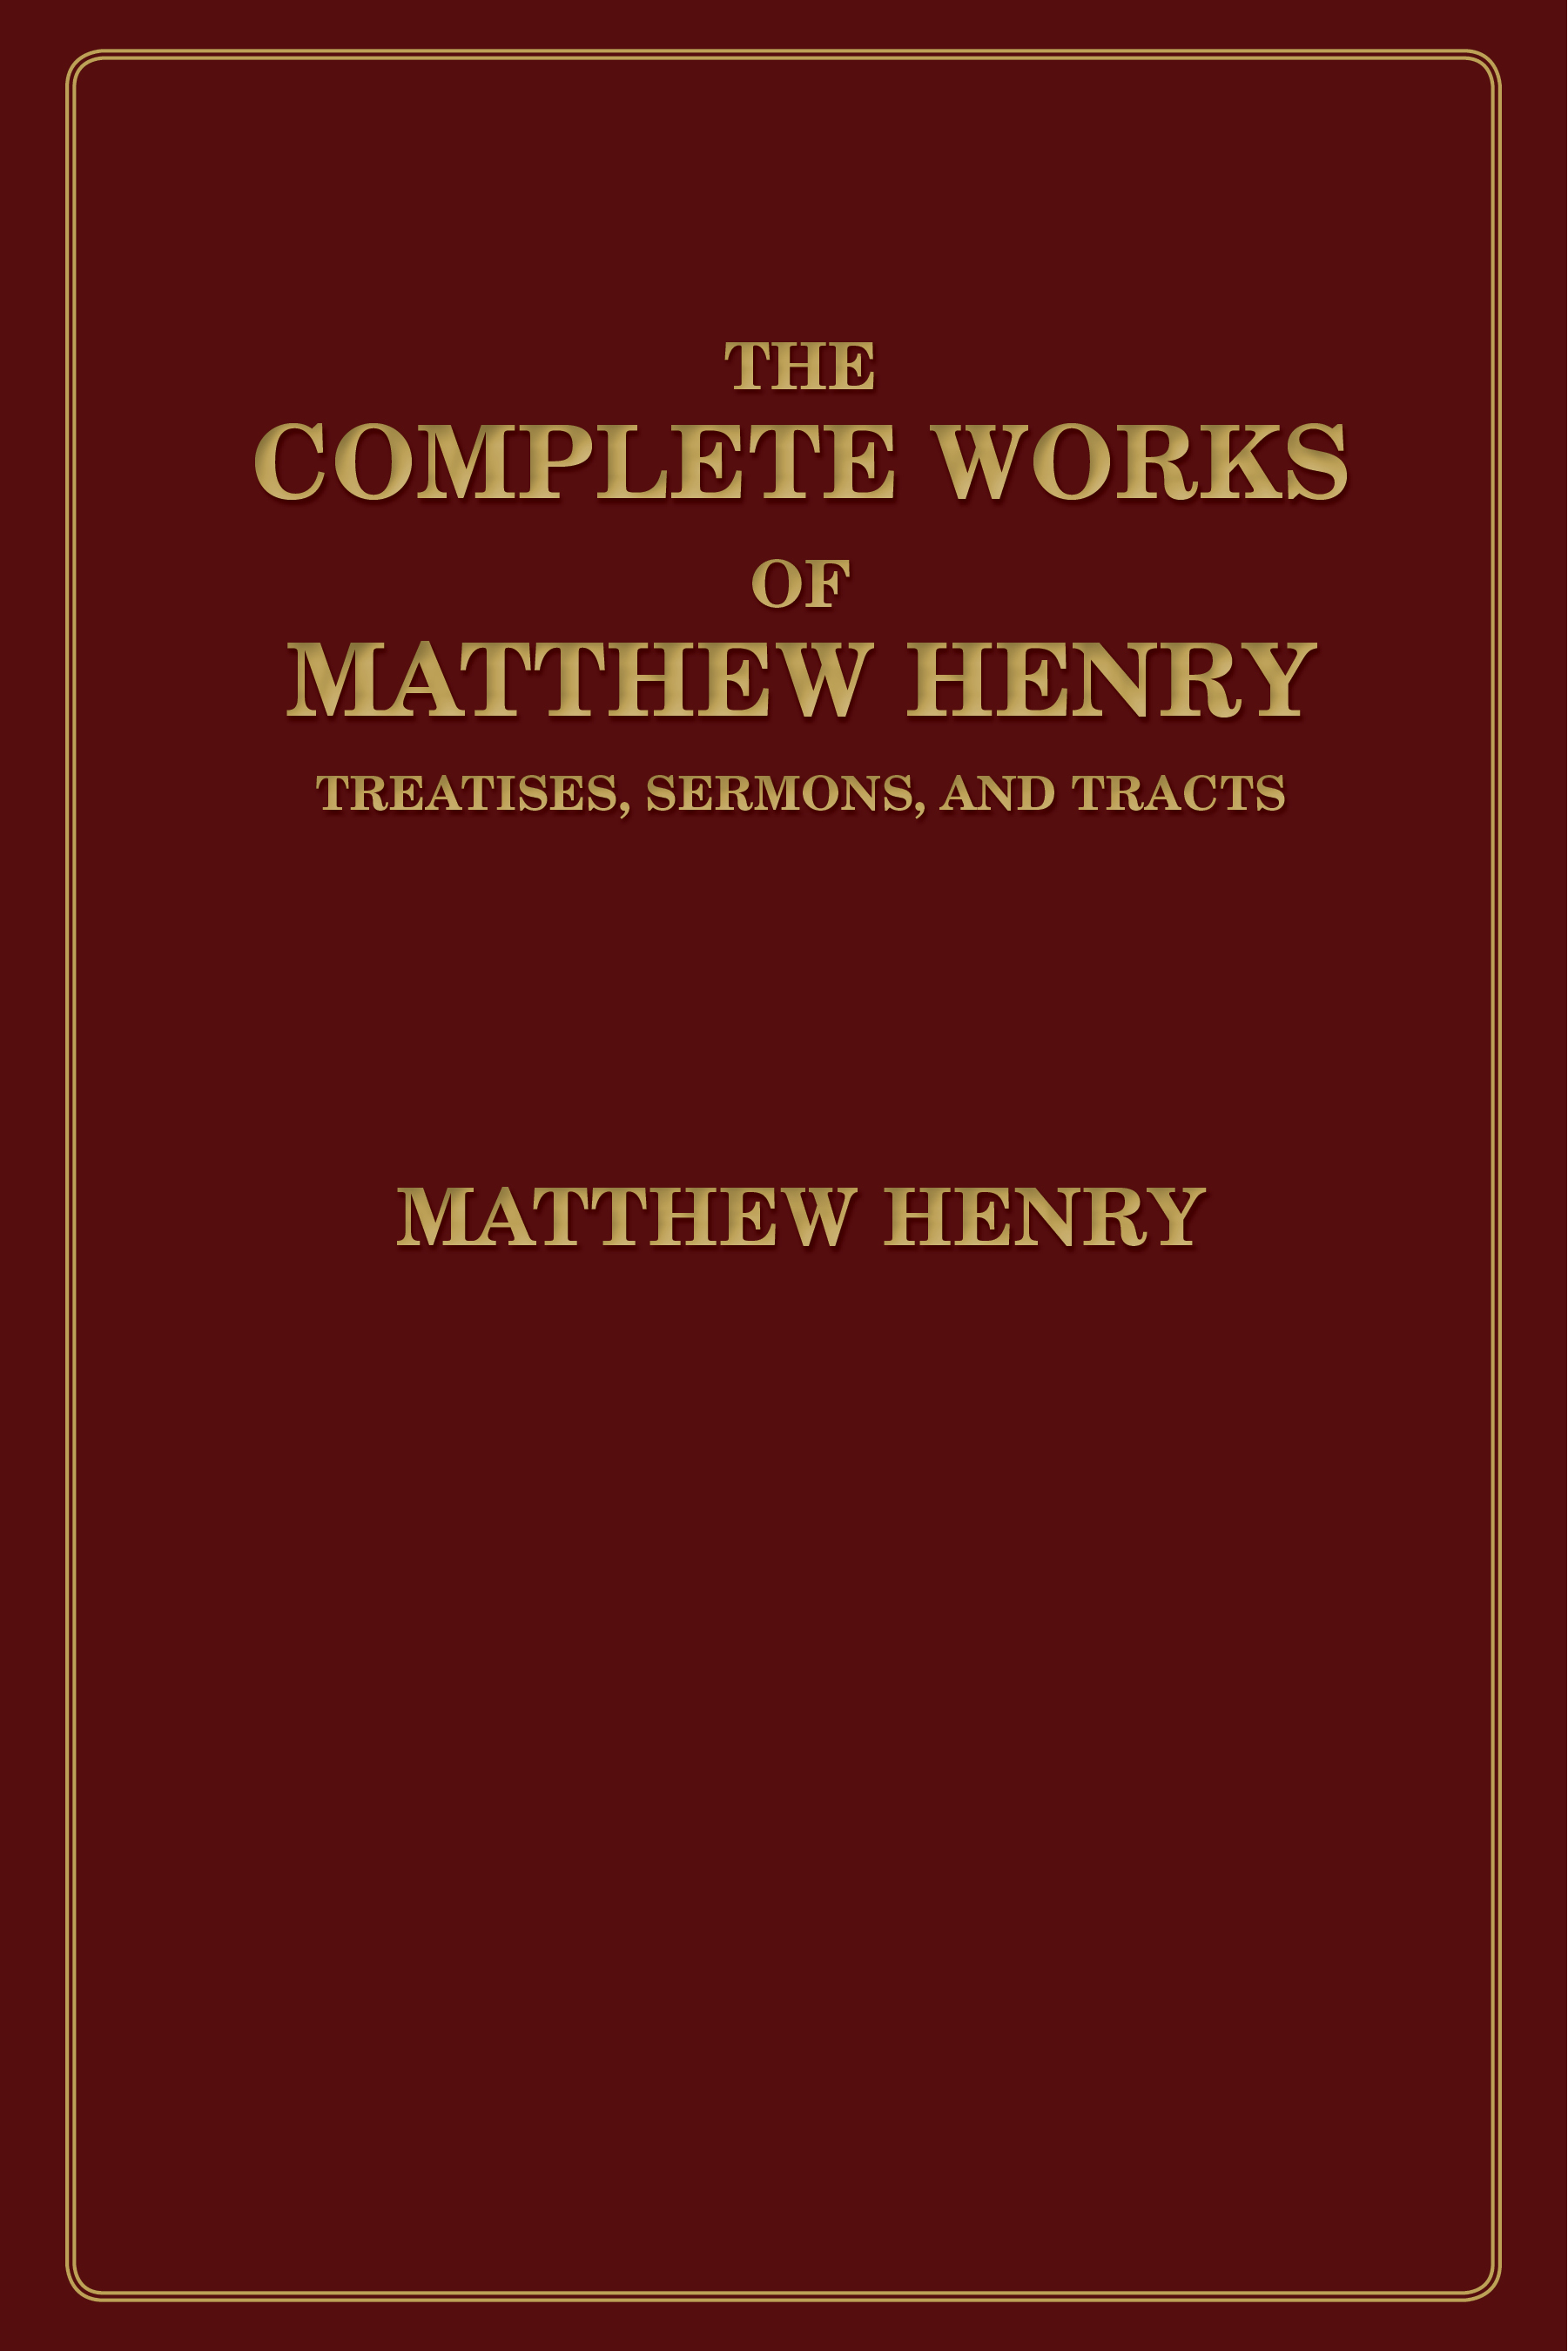 The Complete Works of Matthew Henry | Baker Publishing Group